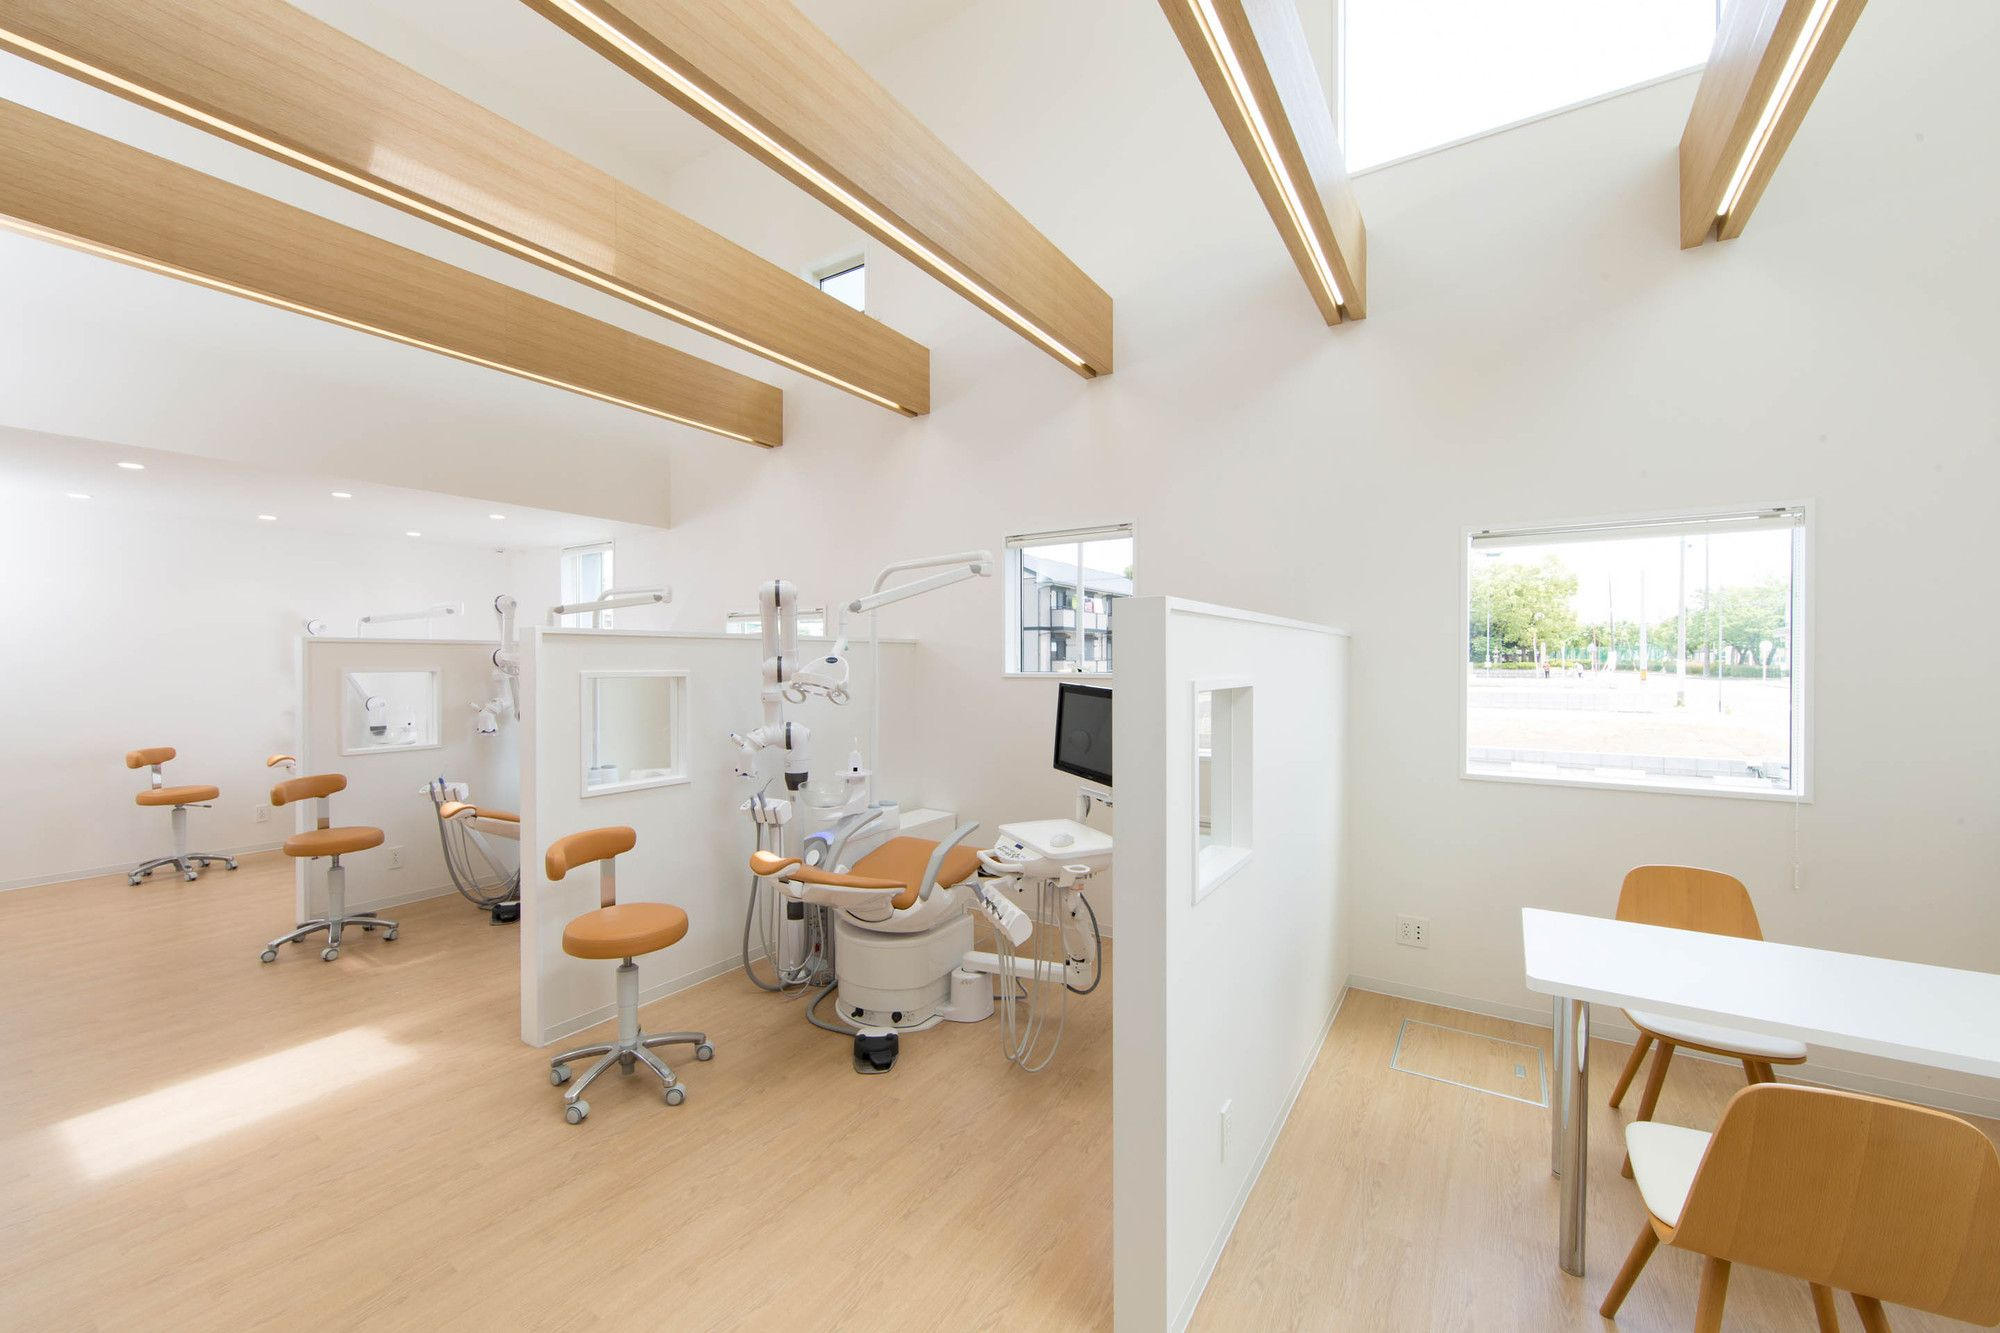 Gallery Of Yokoi Dental Clinic / Iks Design + Msd Office   11